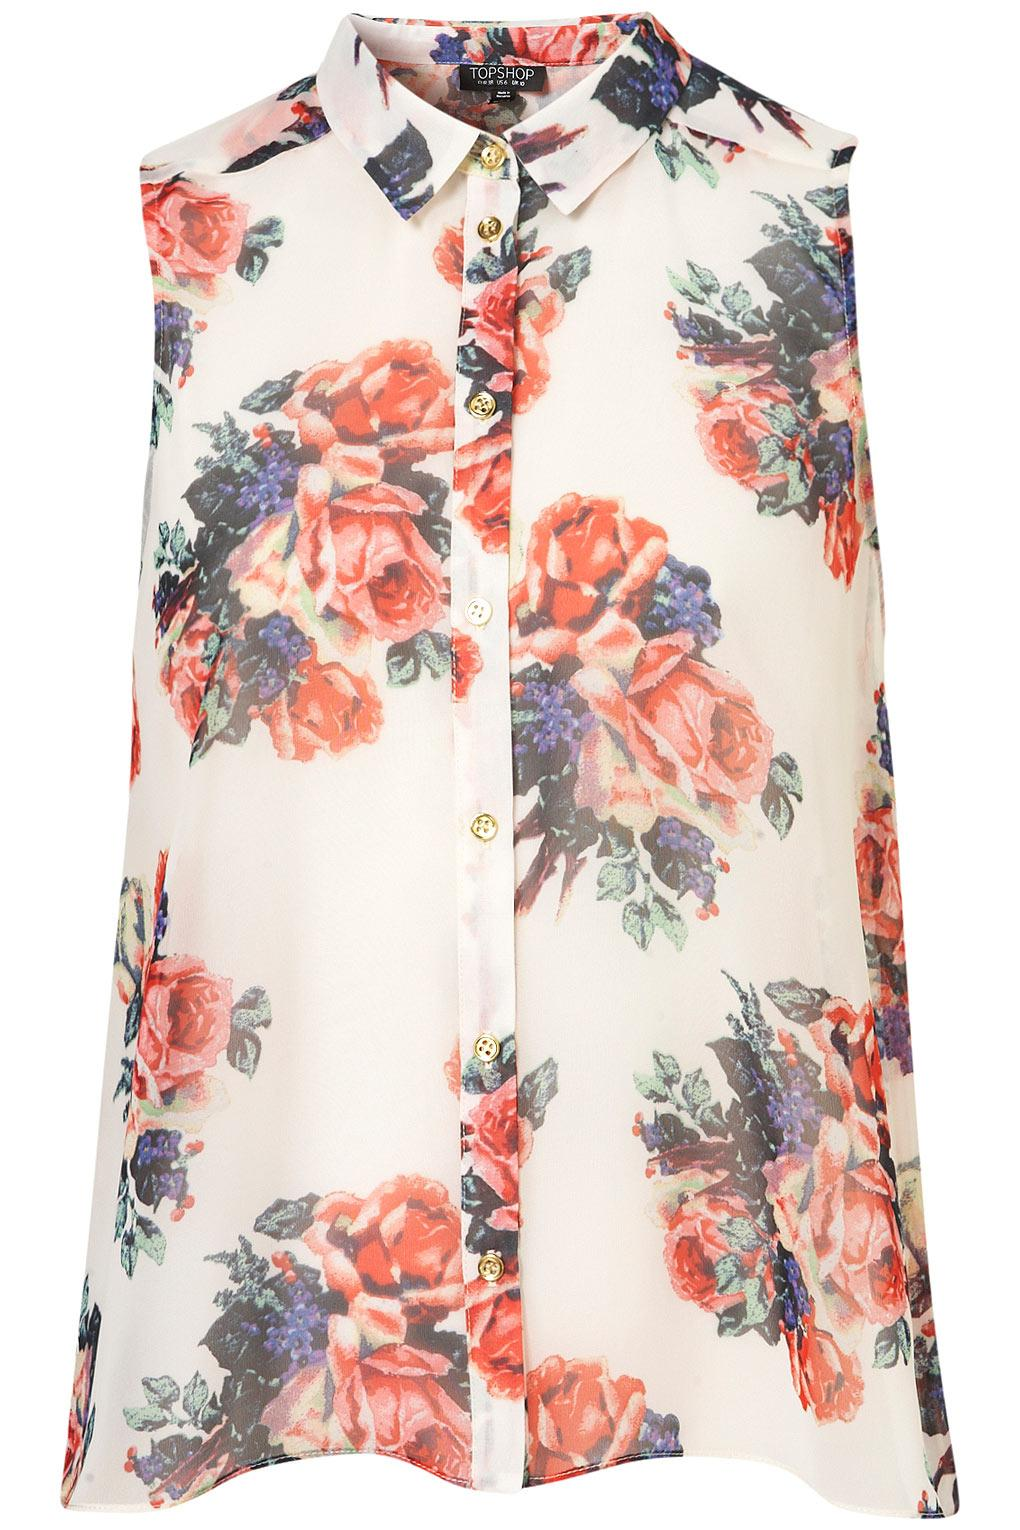 Floral Print Drop Back Shirt - Blouses & Shirts - Tops - Clothing - Topshop